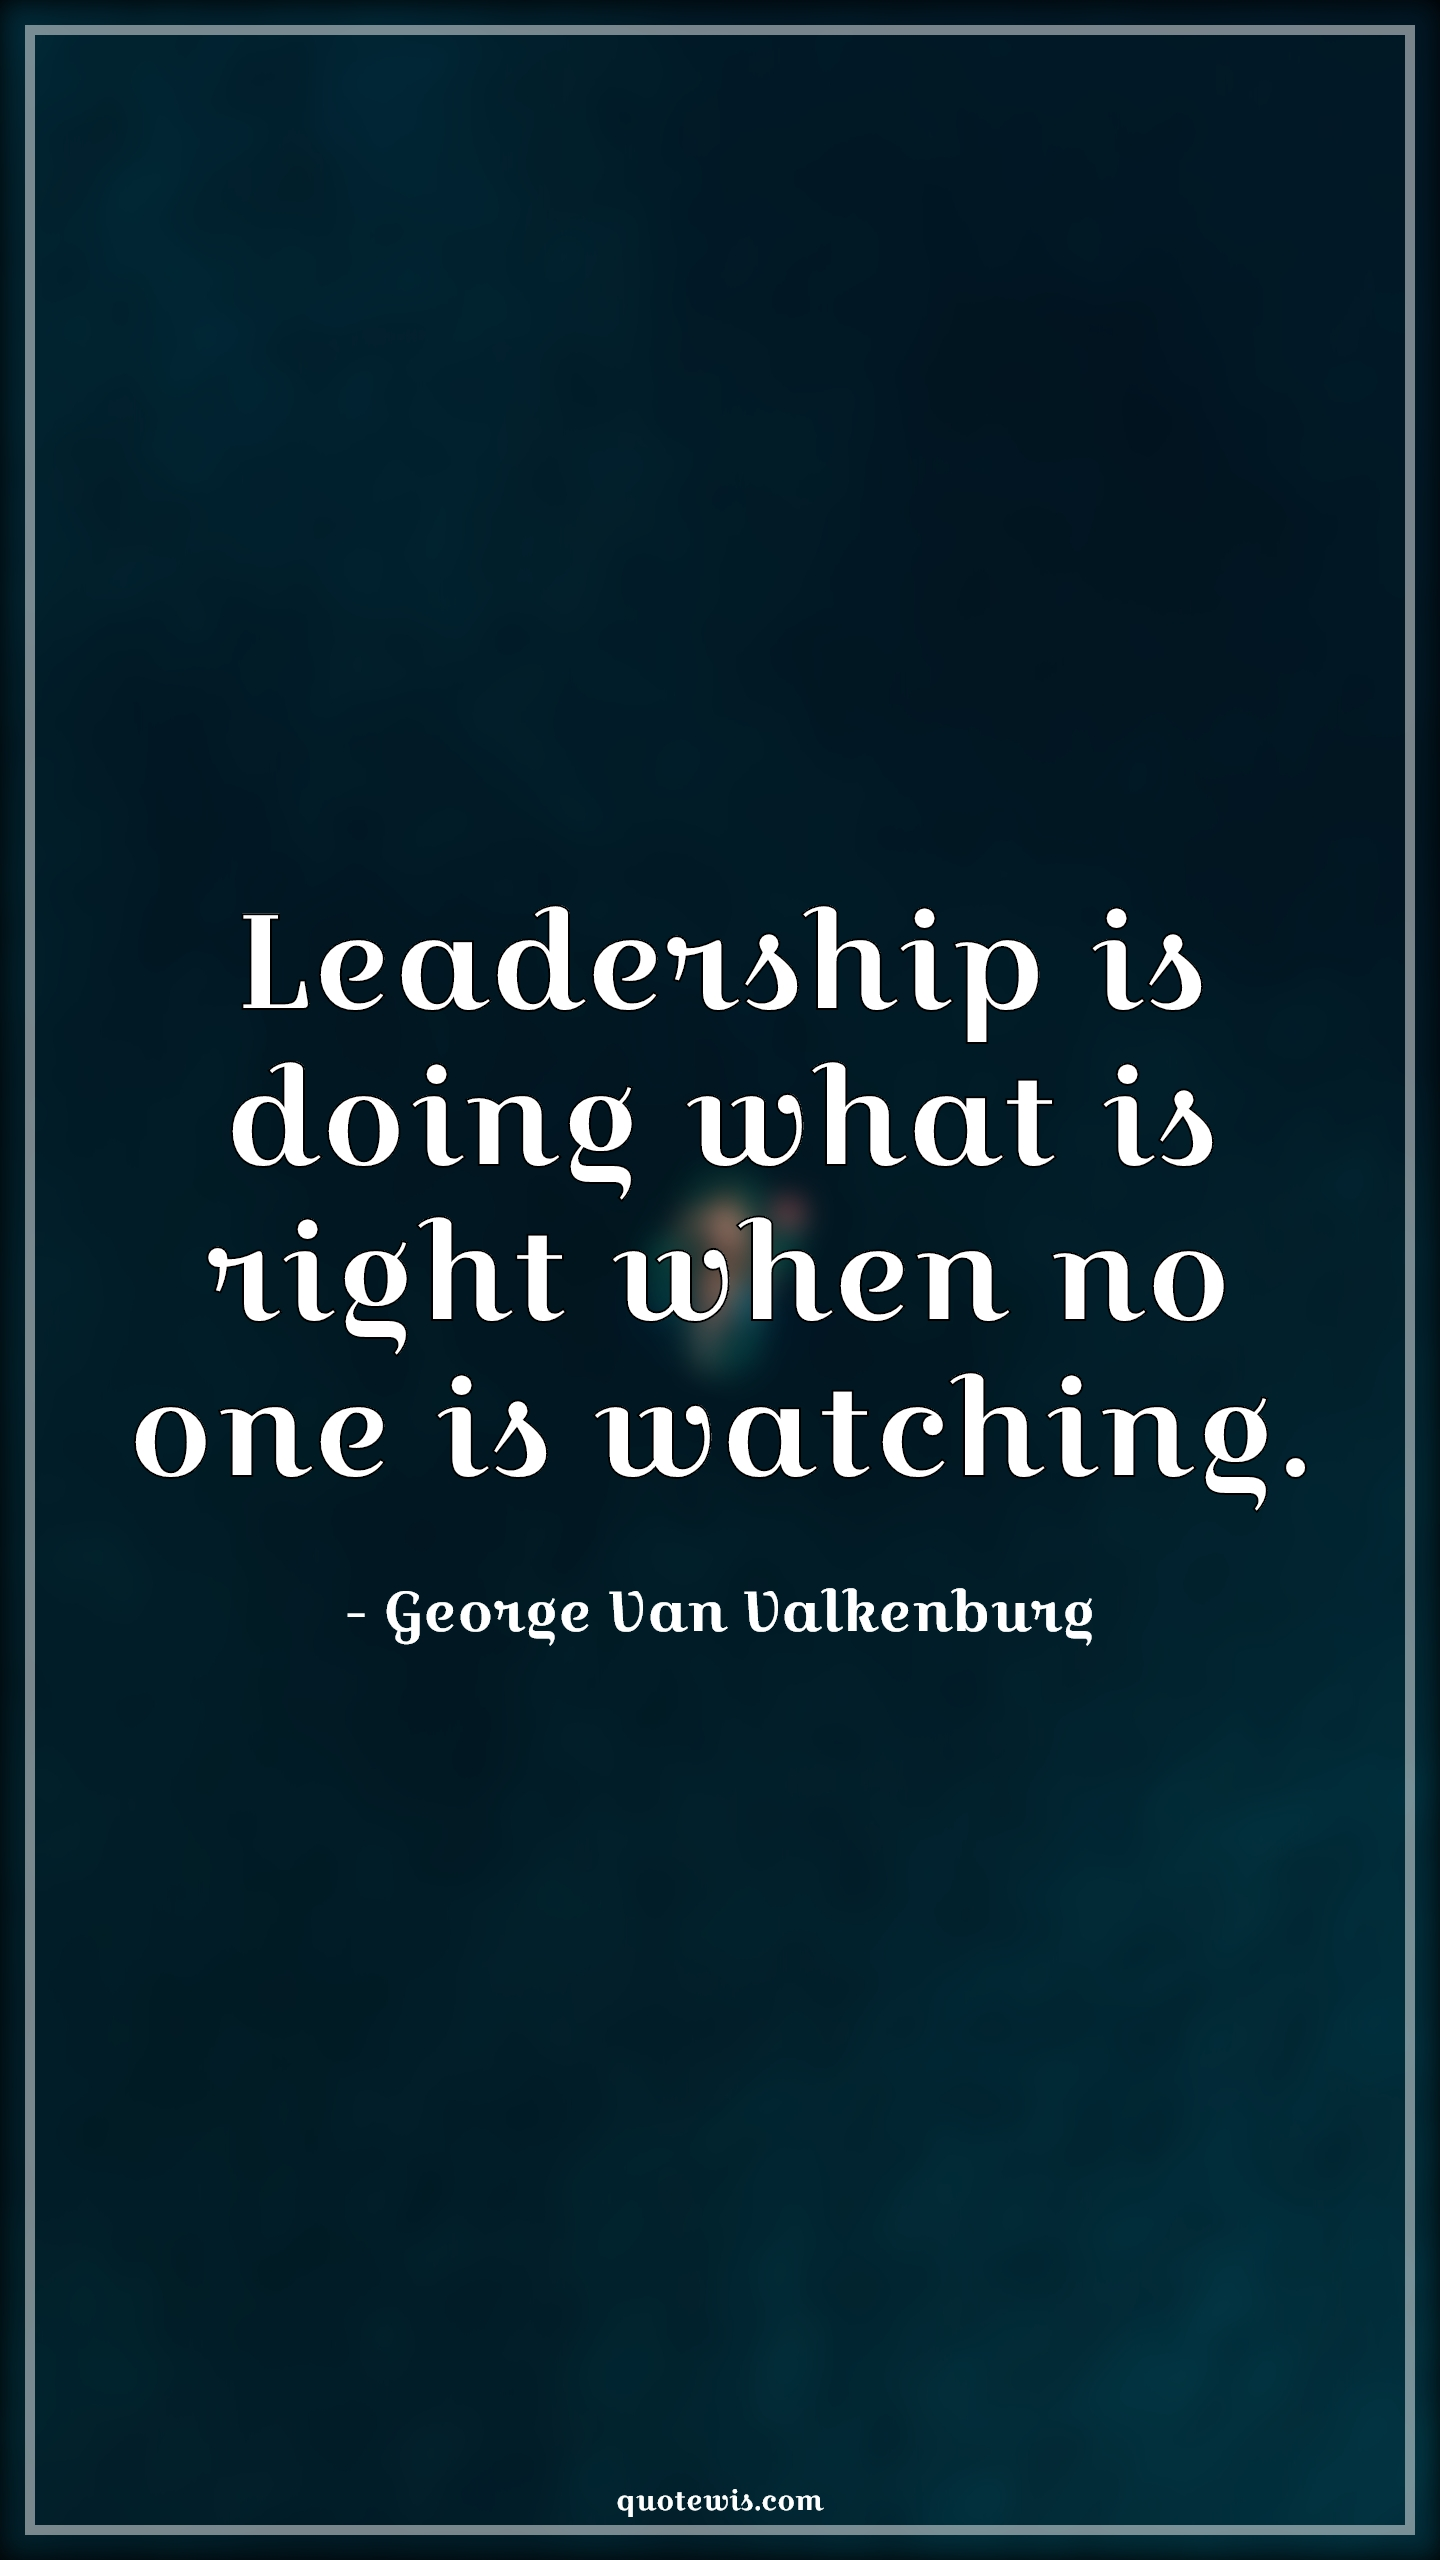 Leadership is doing what is right when no one is watching.